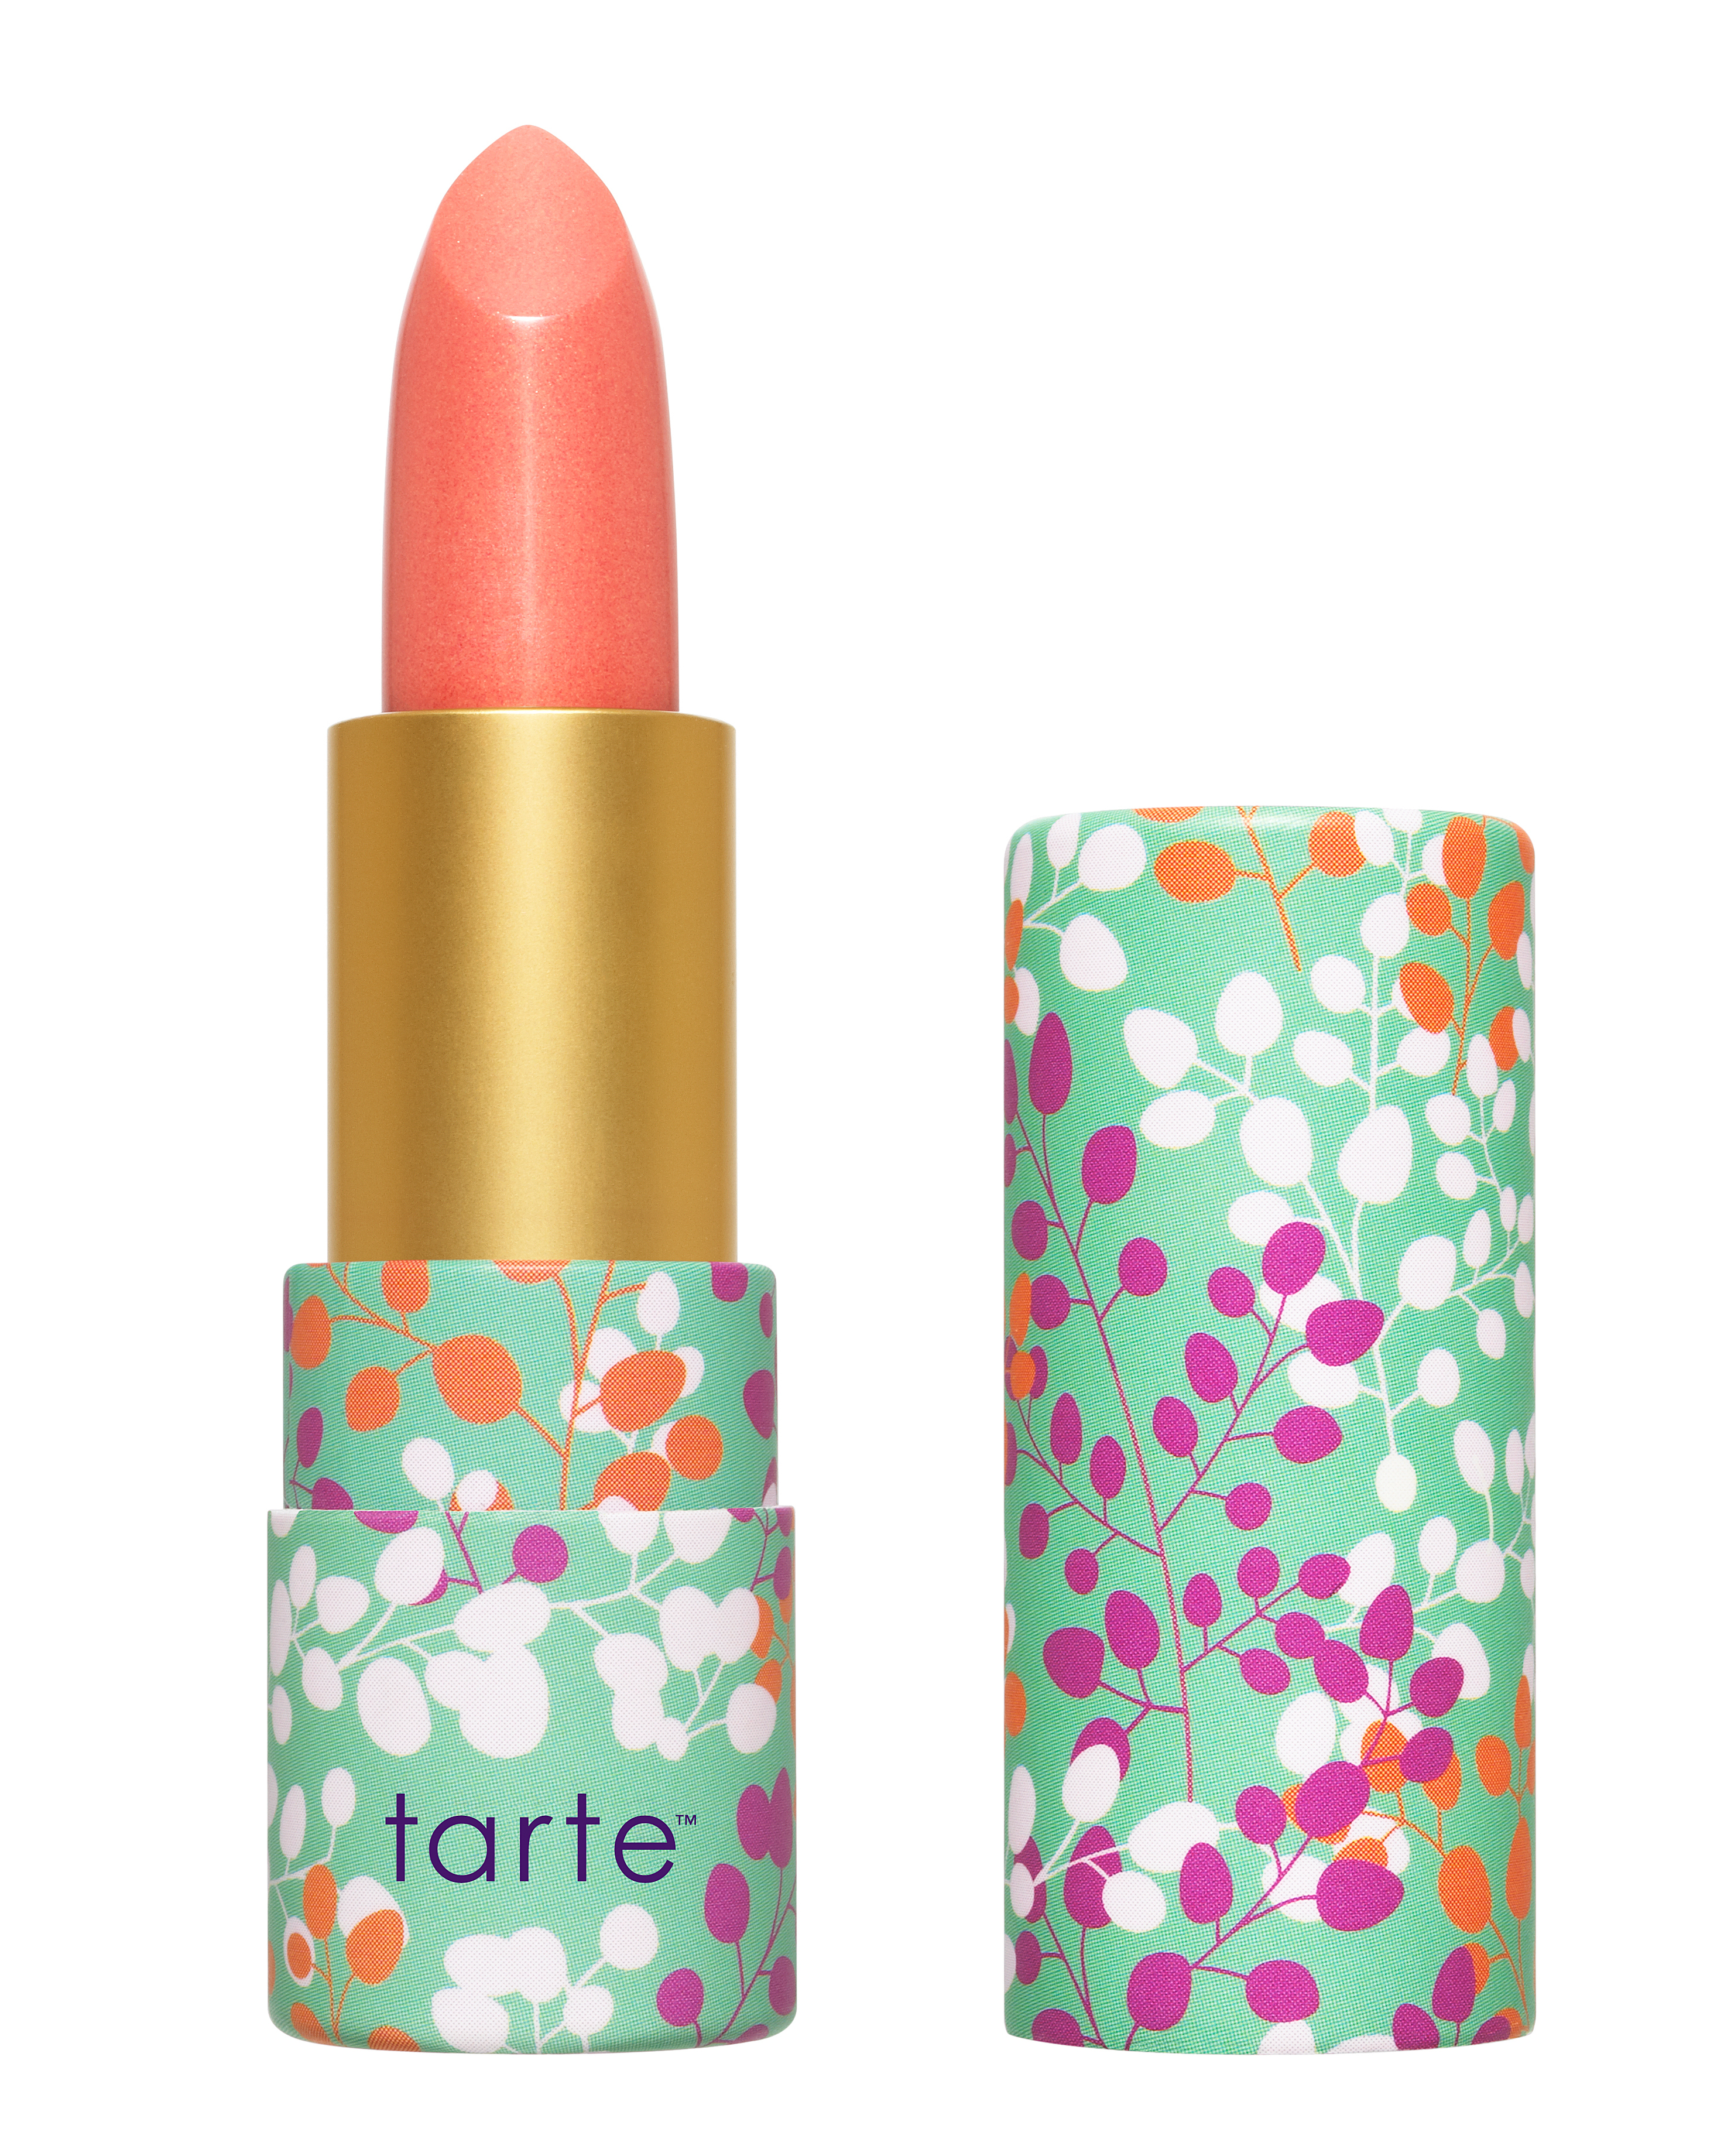 sarah-potempa-beauty-picks-tarte-glamazon-lipstick-0414.jpg